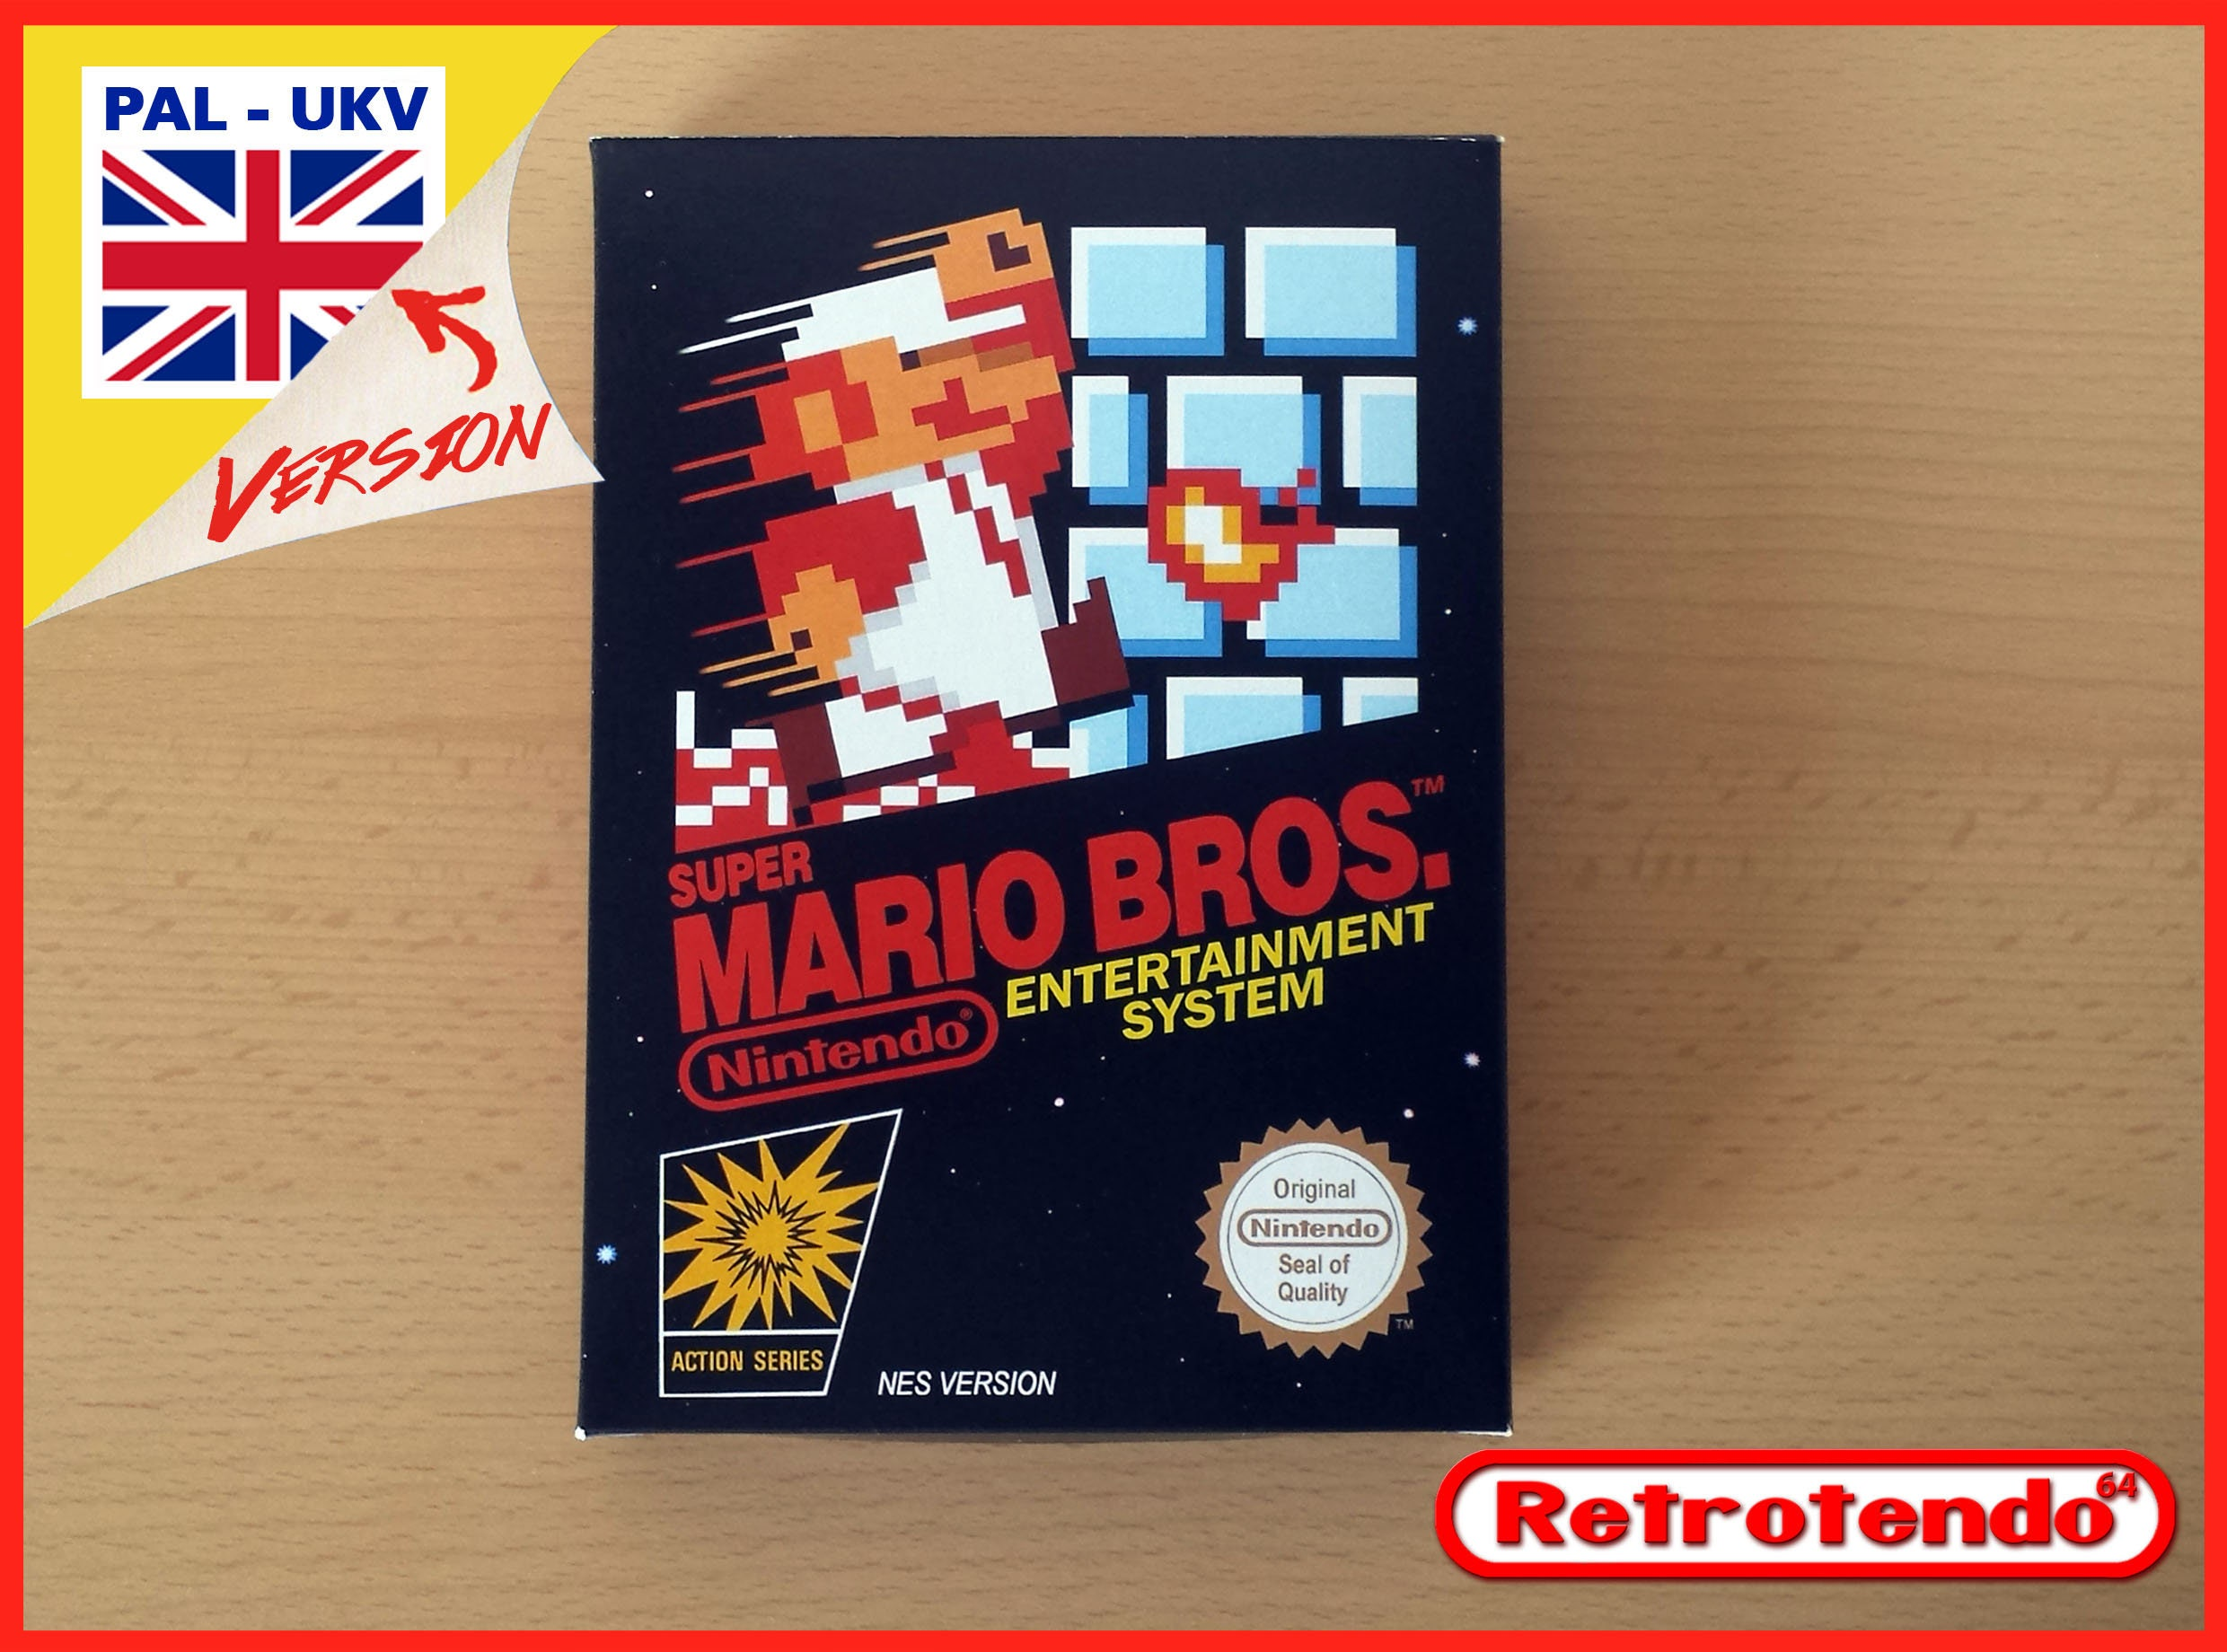 Super Mario Bros NES Nintendo Reproduction Box Only  No Game PALEng  PALFah Versions